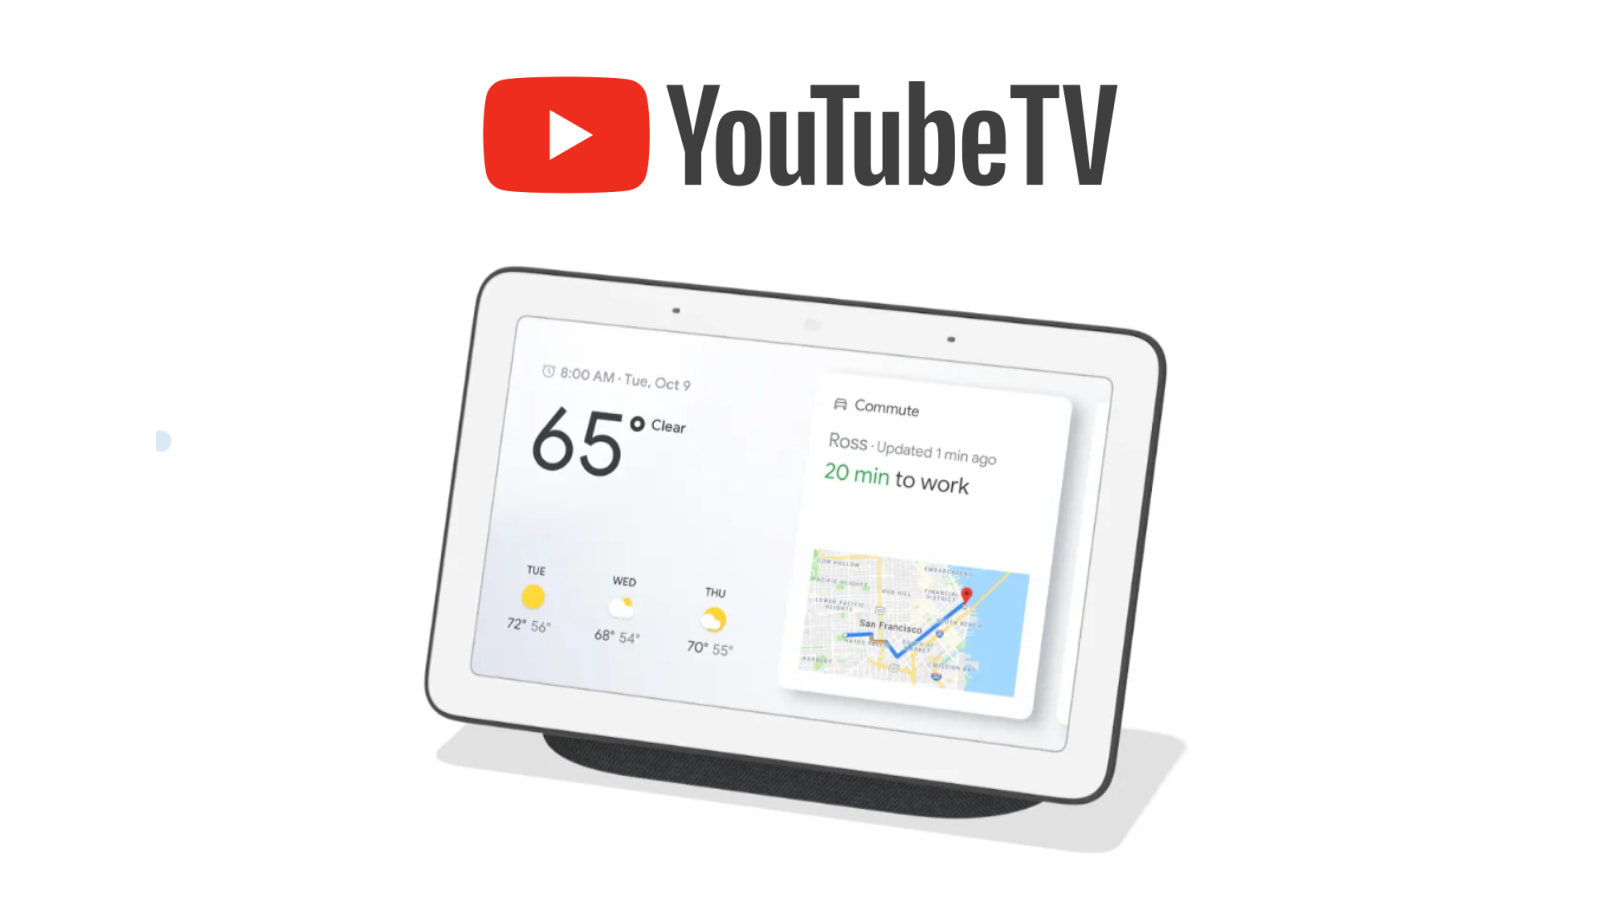 Select YouTube TV subscribers just scored a $50 Nest Hub smart display